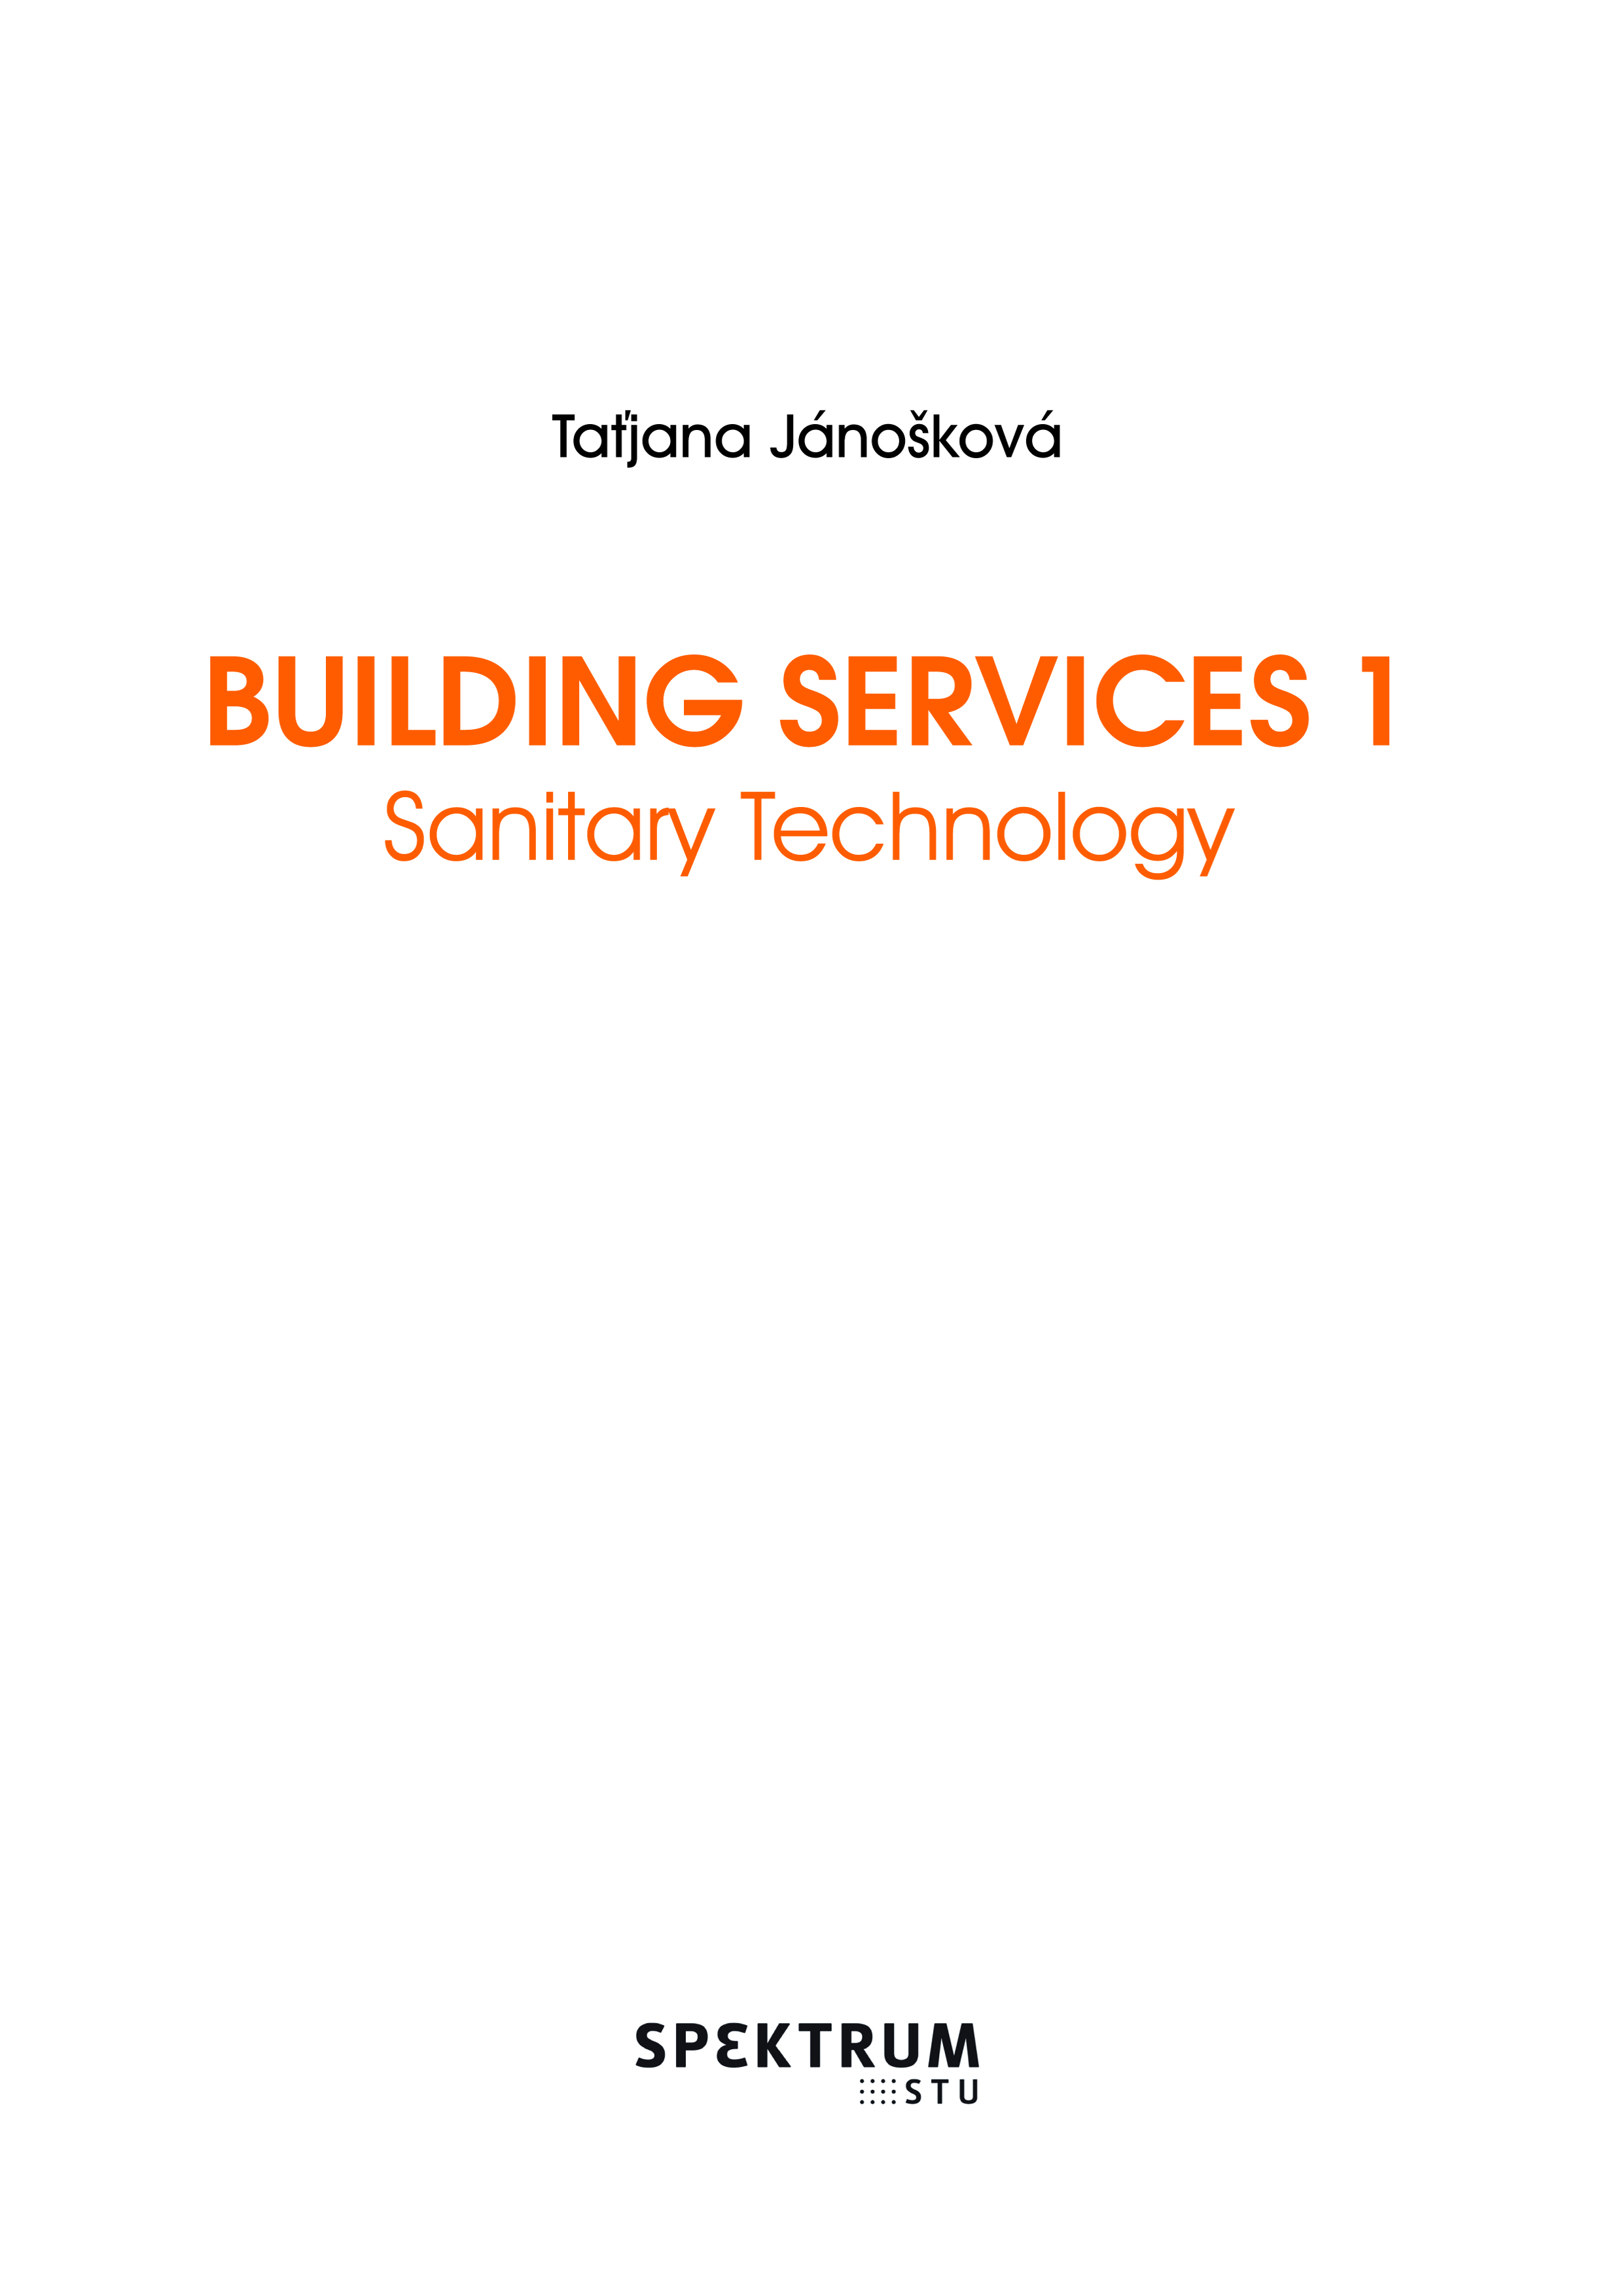 Building Services 1, Sanitary Technology